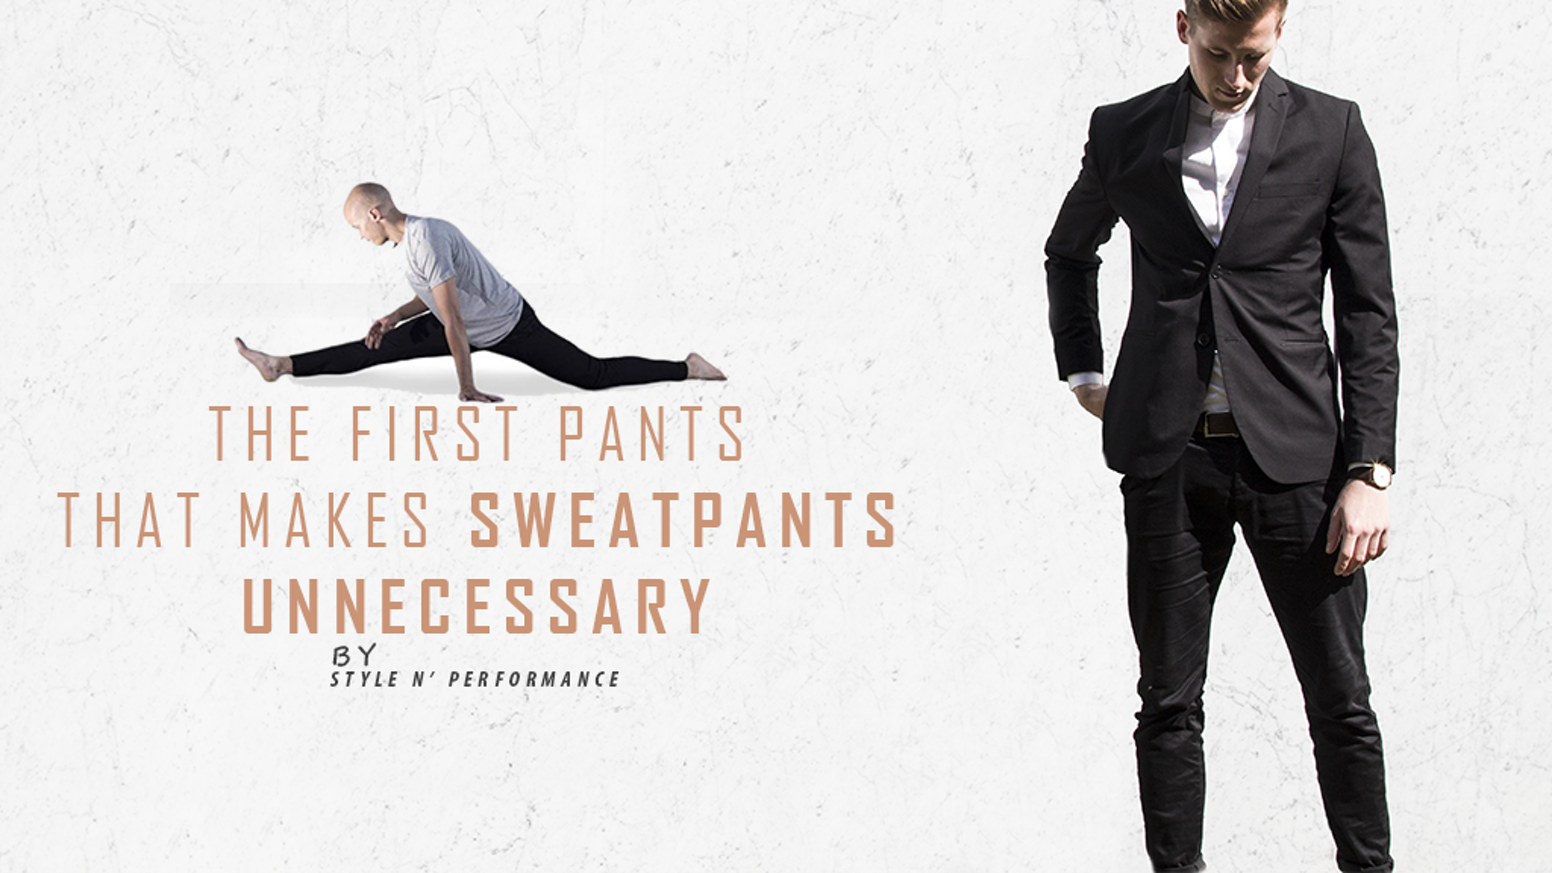 the first pants that make sweatpants unnecessary by christoffer bak